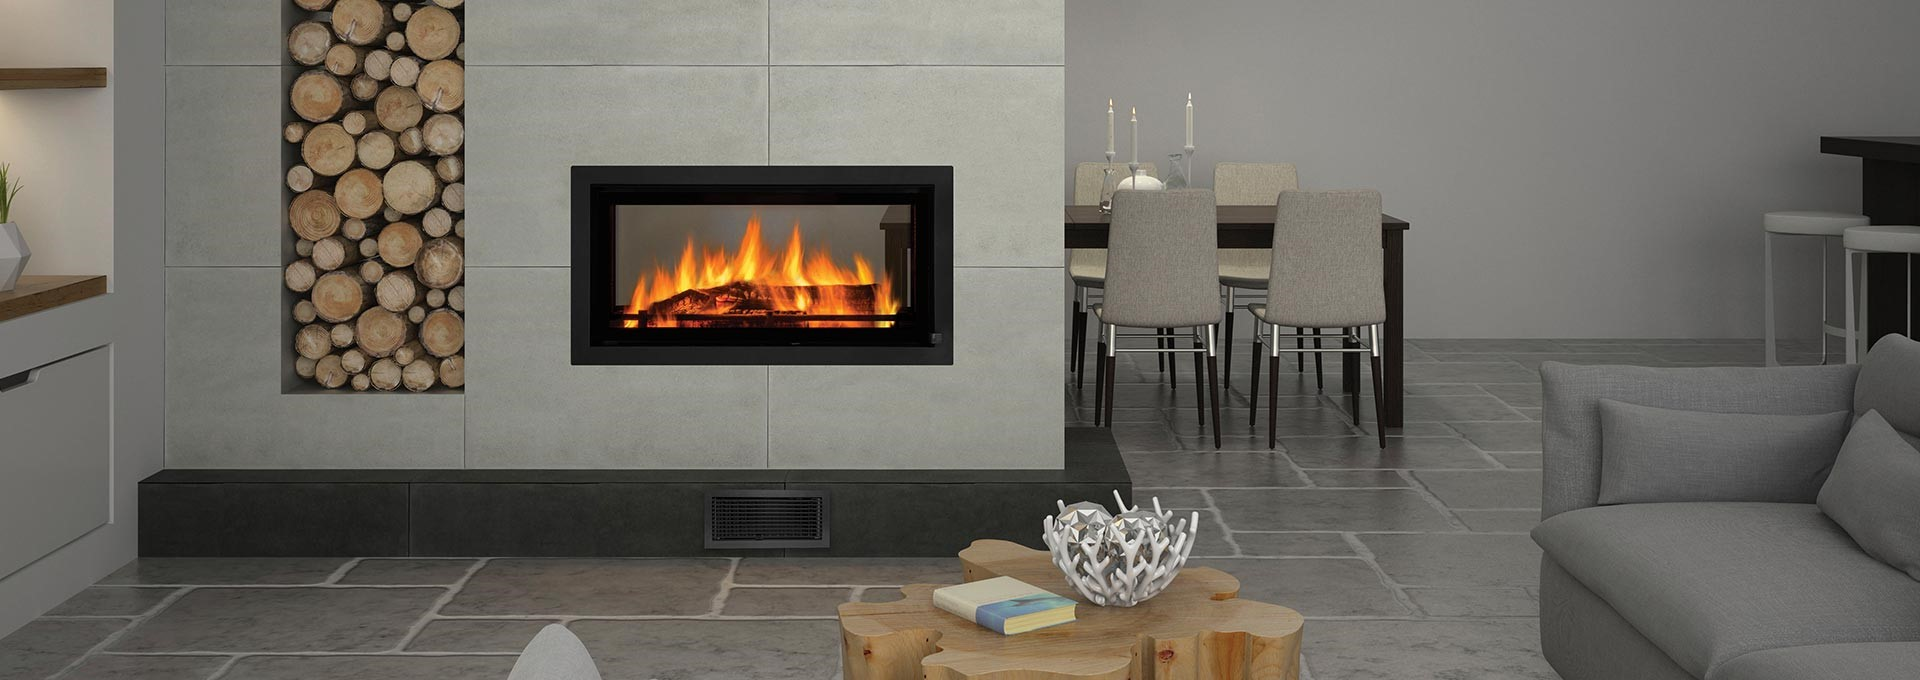 New Regency Mansfield Wood Fireplaces Proving You Can Have It All Build